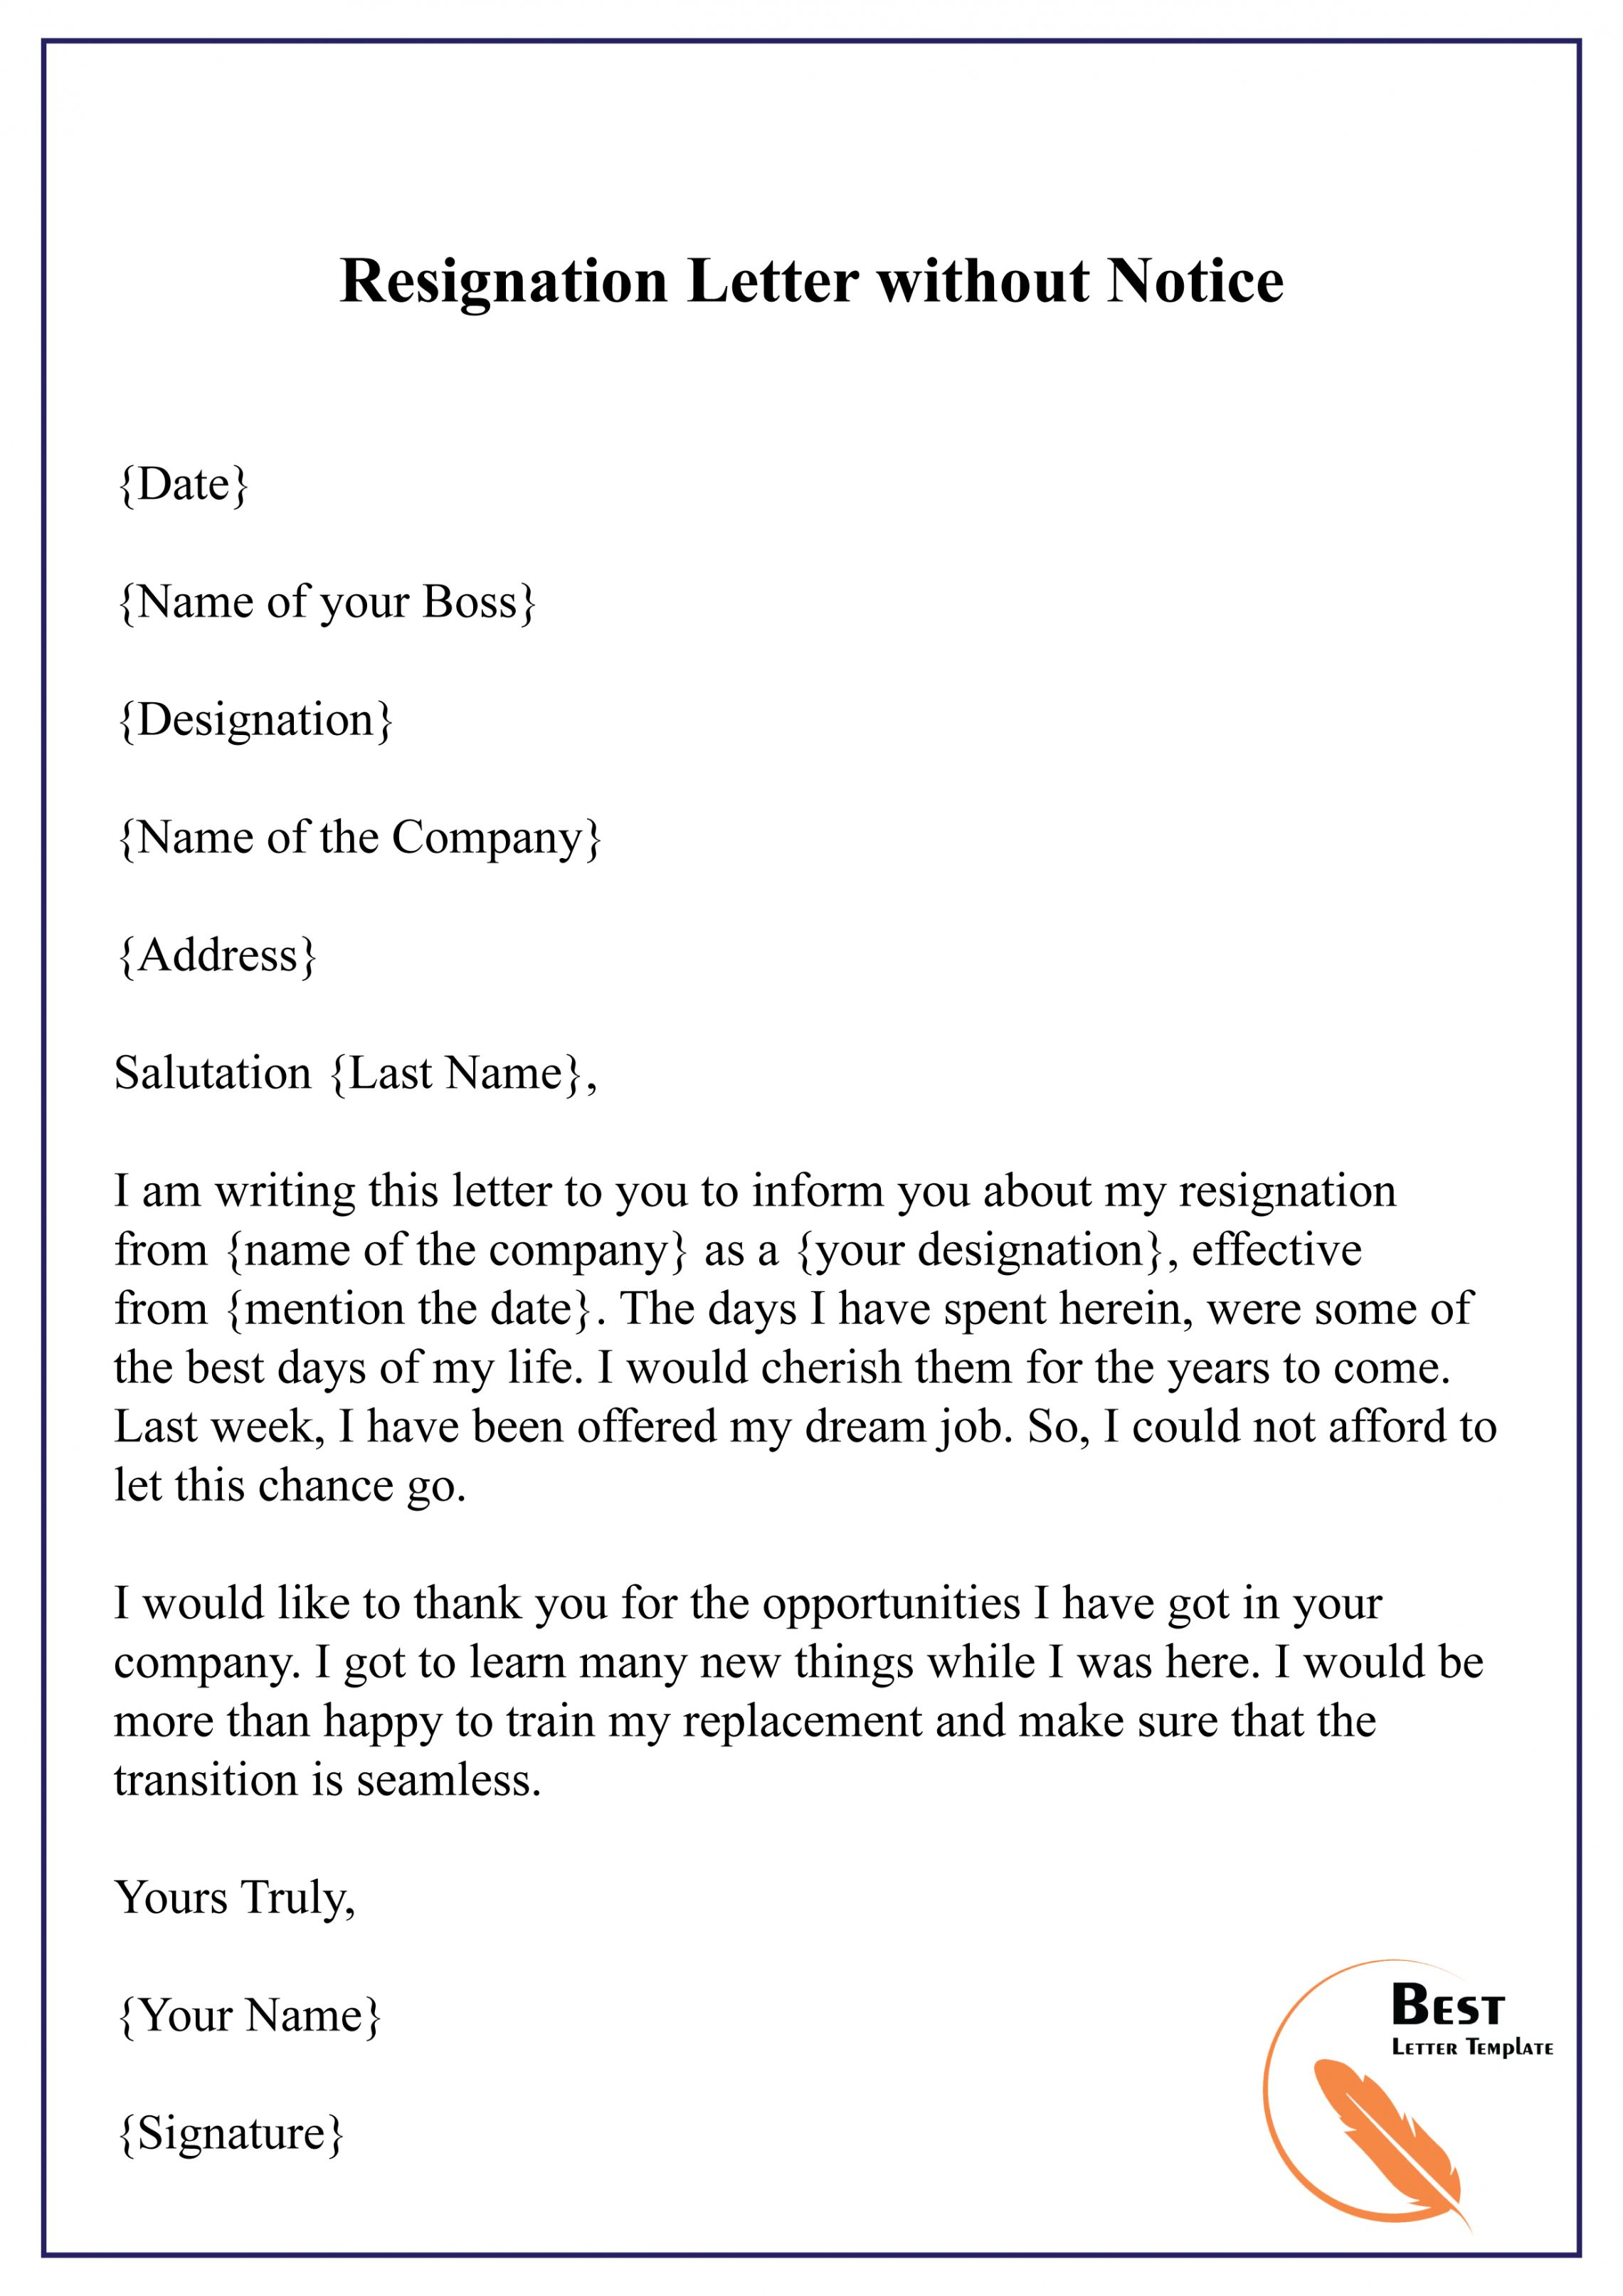 Explore Our Example of Resignation Letter Without Notice Template